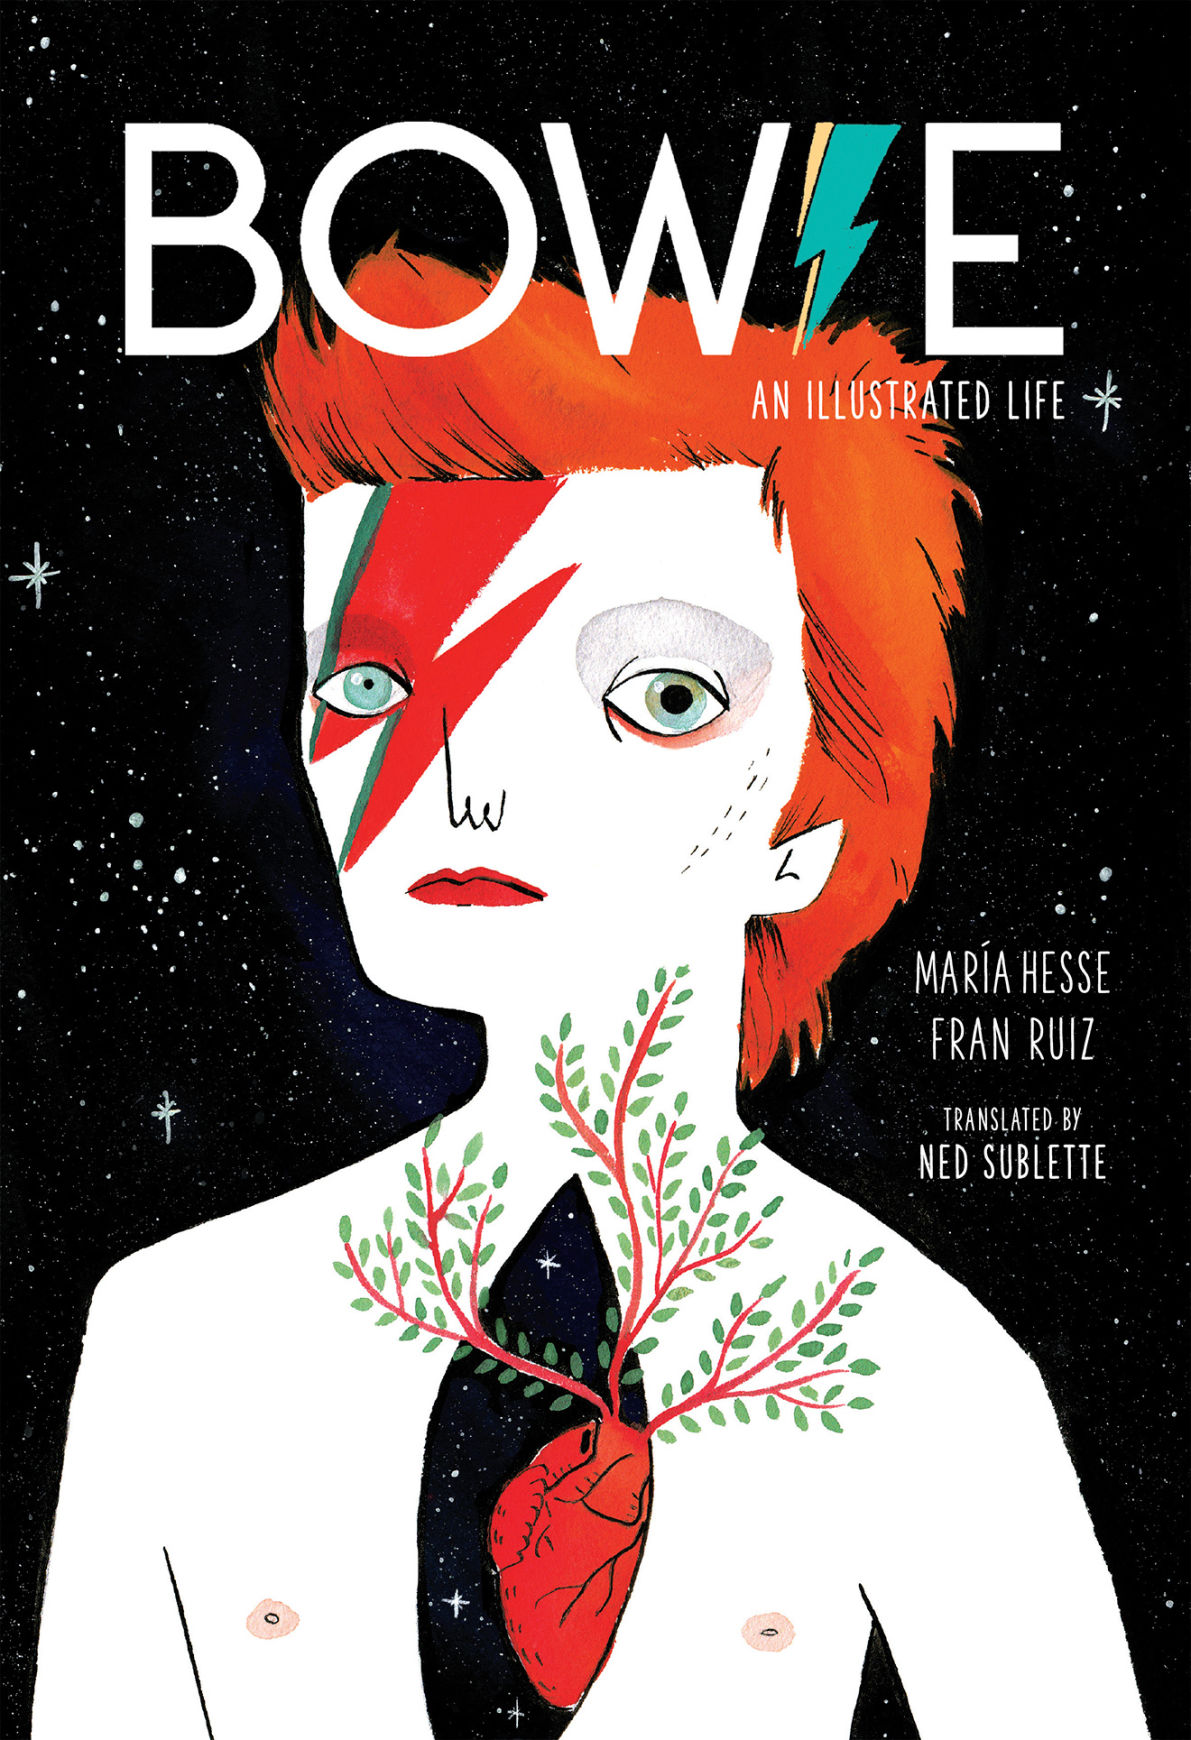 06 sept book rev bowie an illustrated life 3